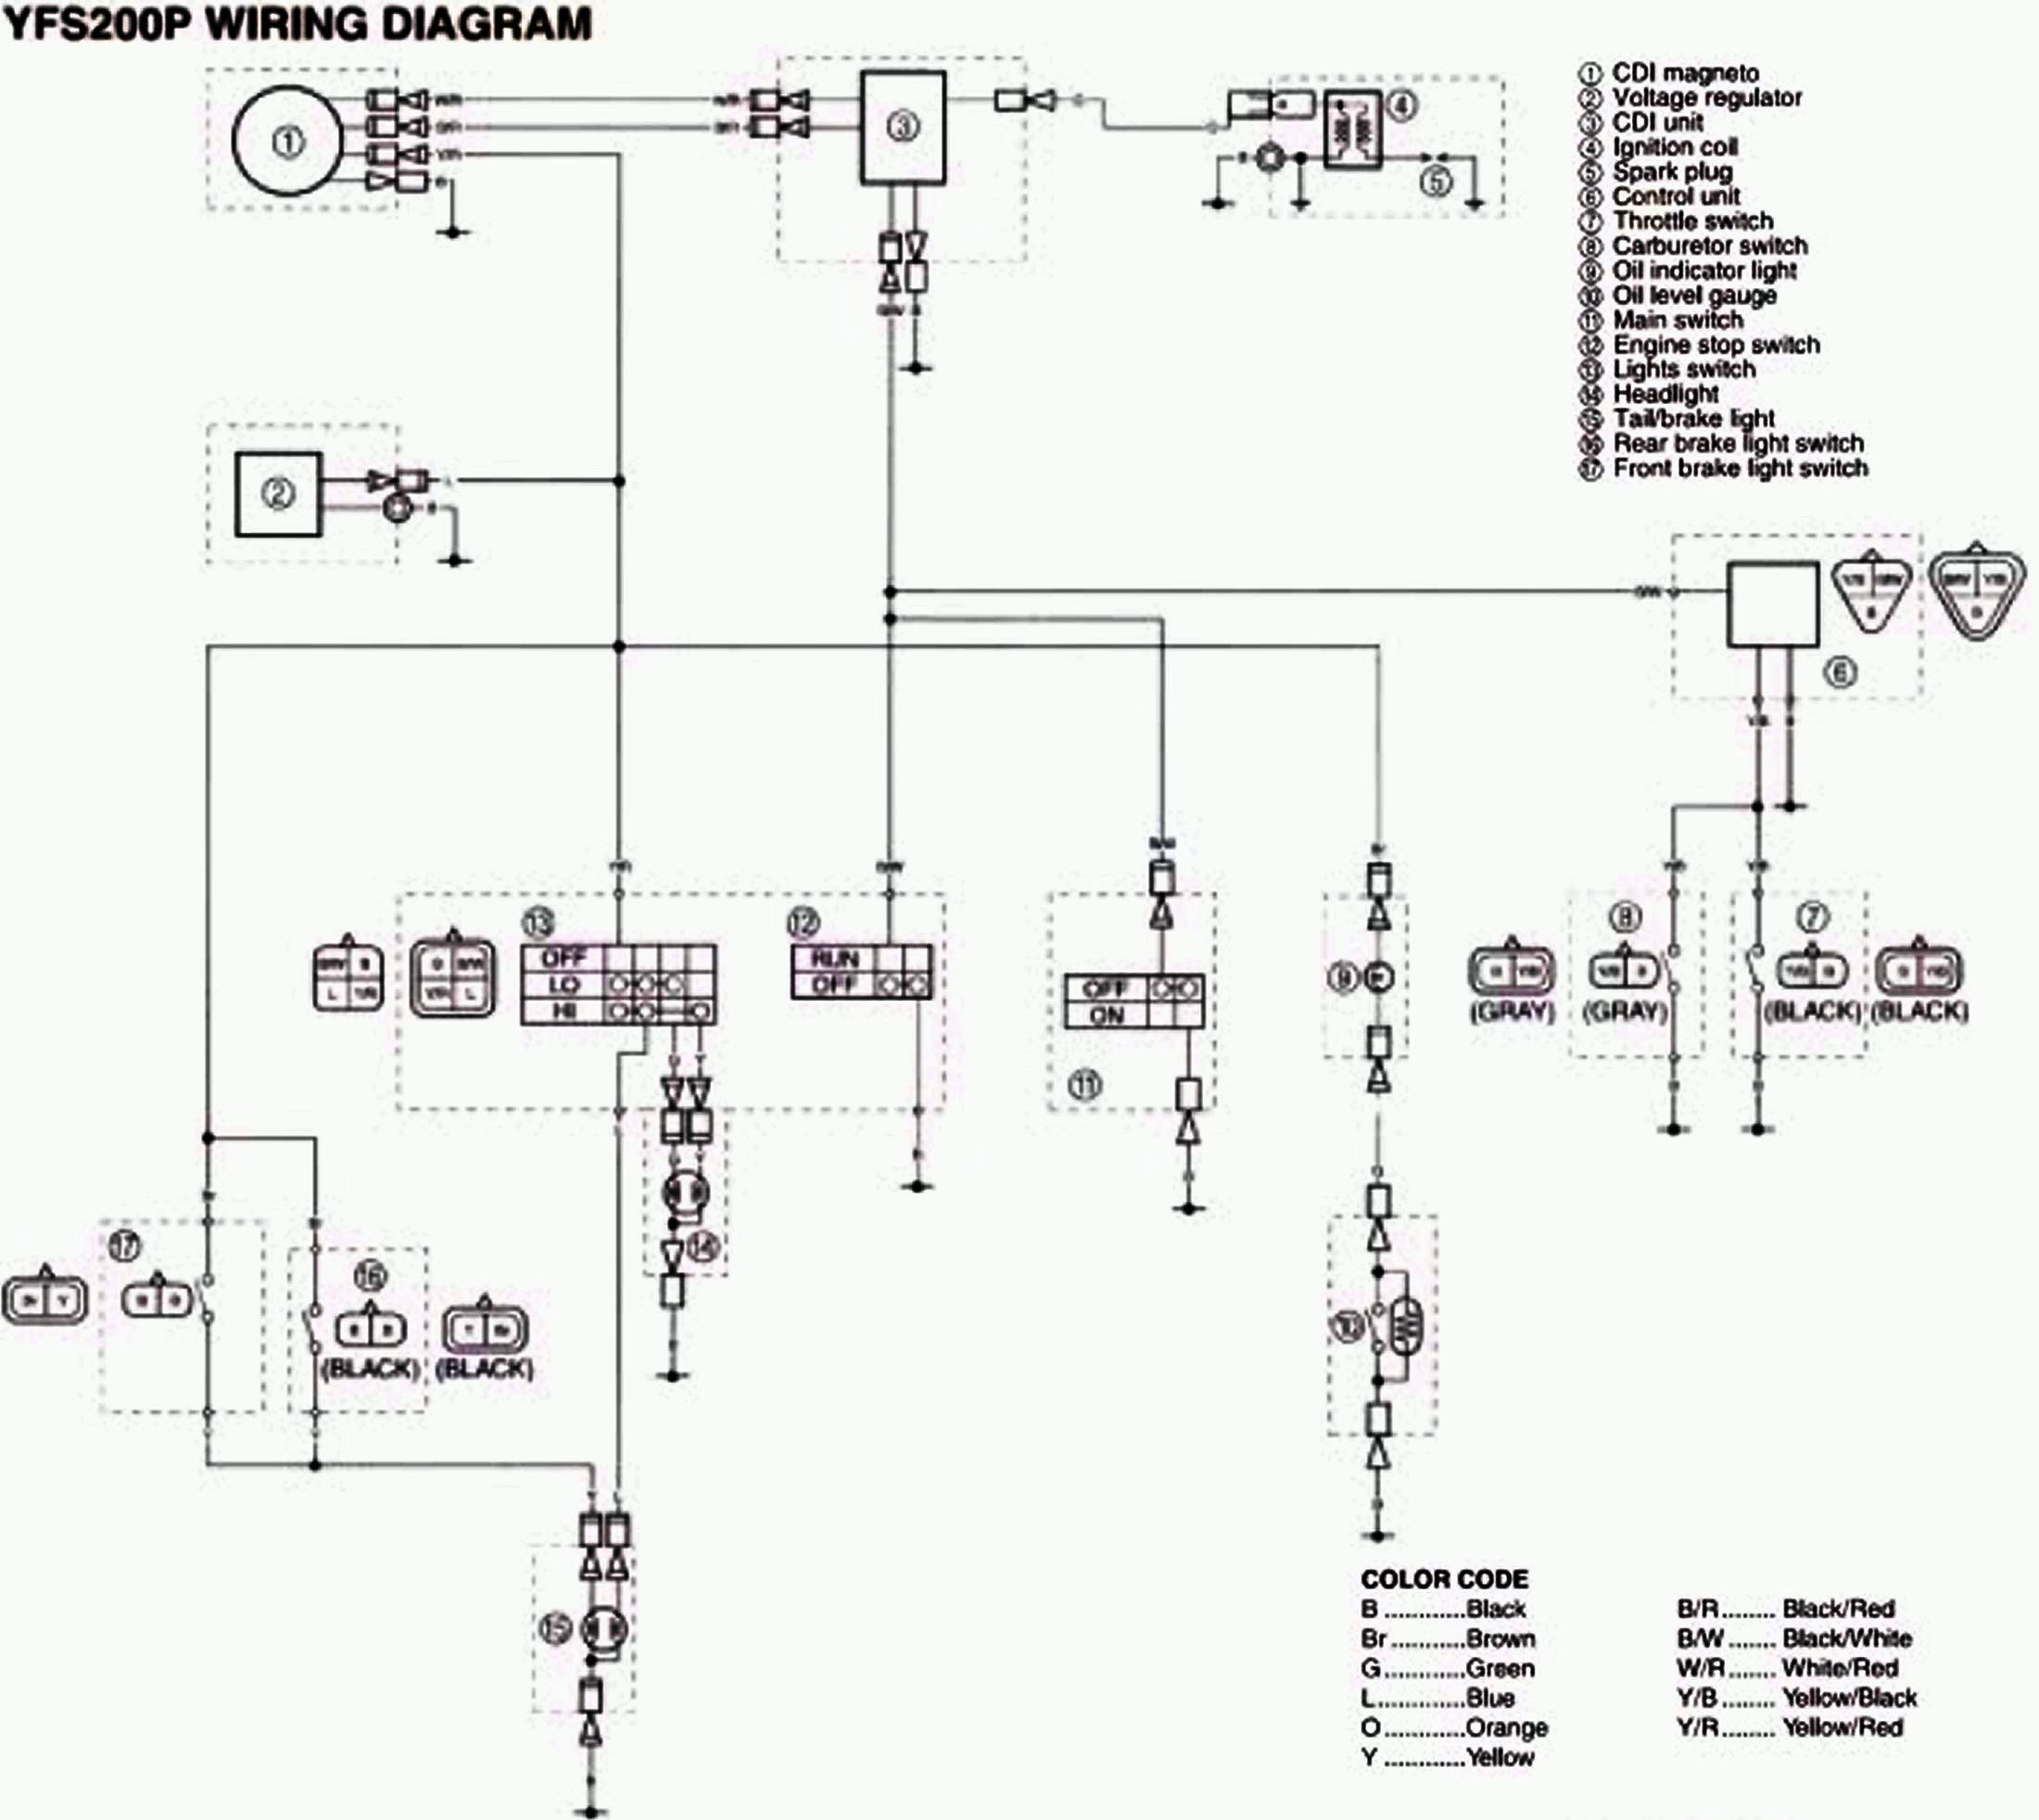 Wiring Diagram For Yamaha Blaster Opinions About Wiring Diagram \u2022  Yamaha Parts Diagram 2003 Yamaha Wiring Diagram